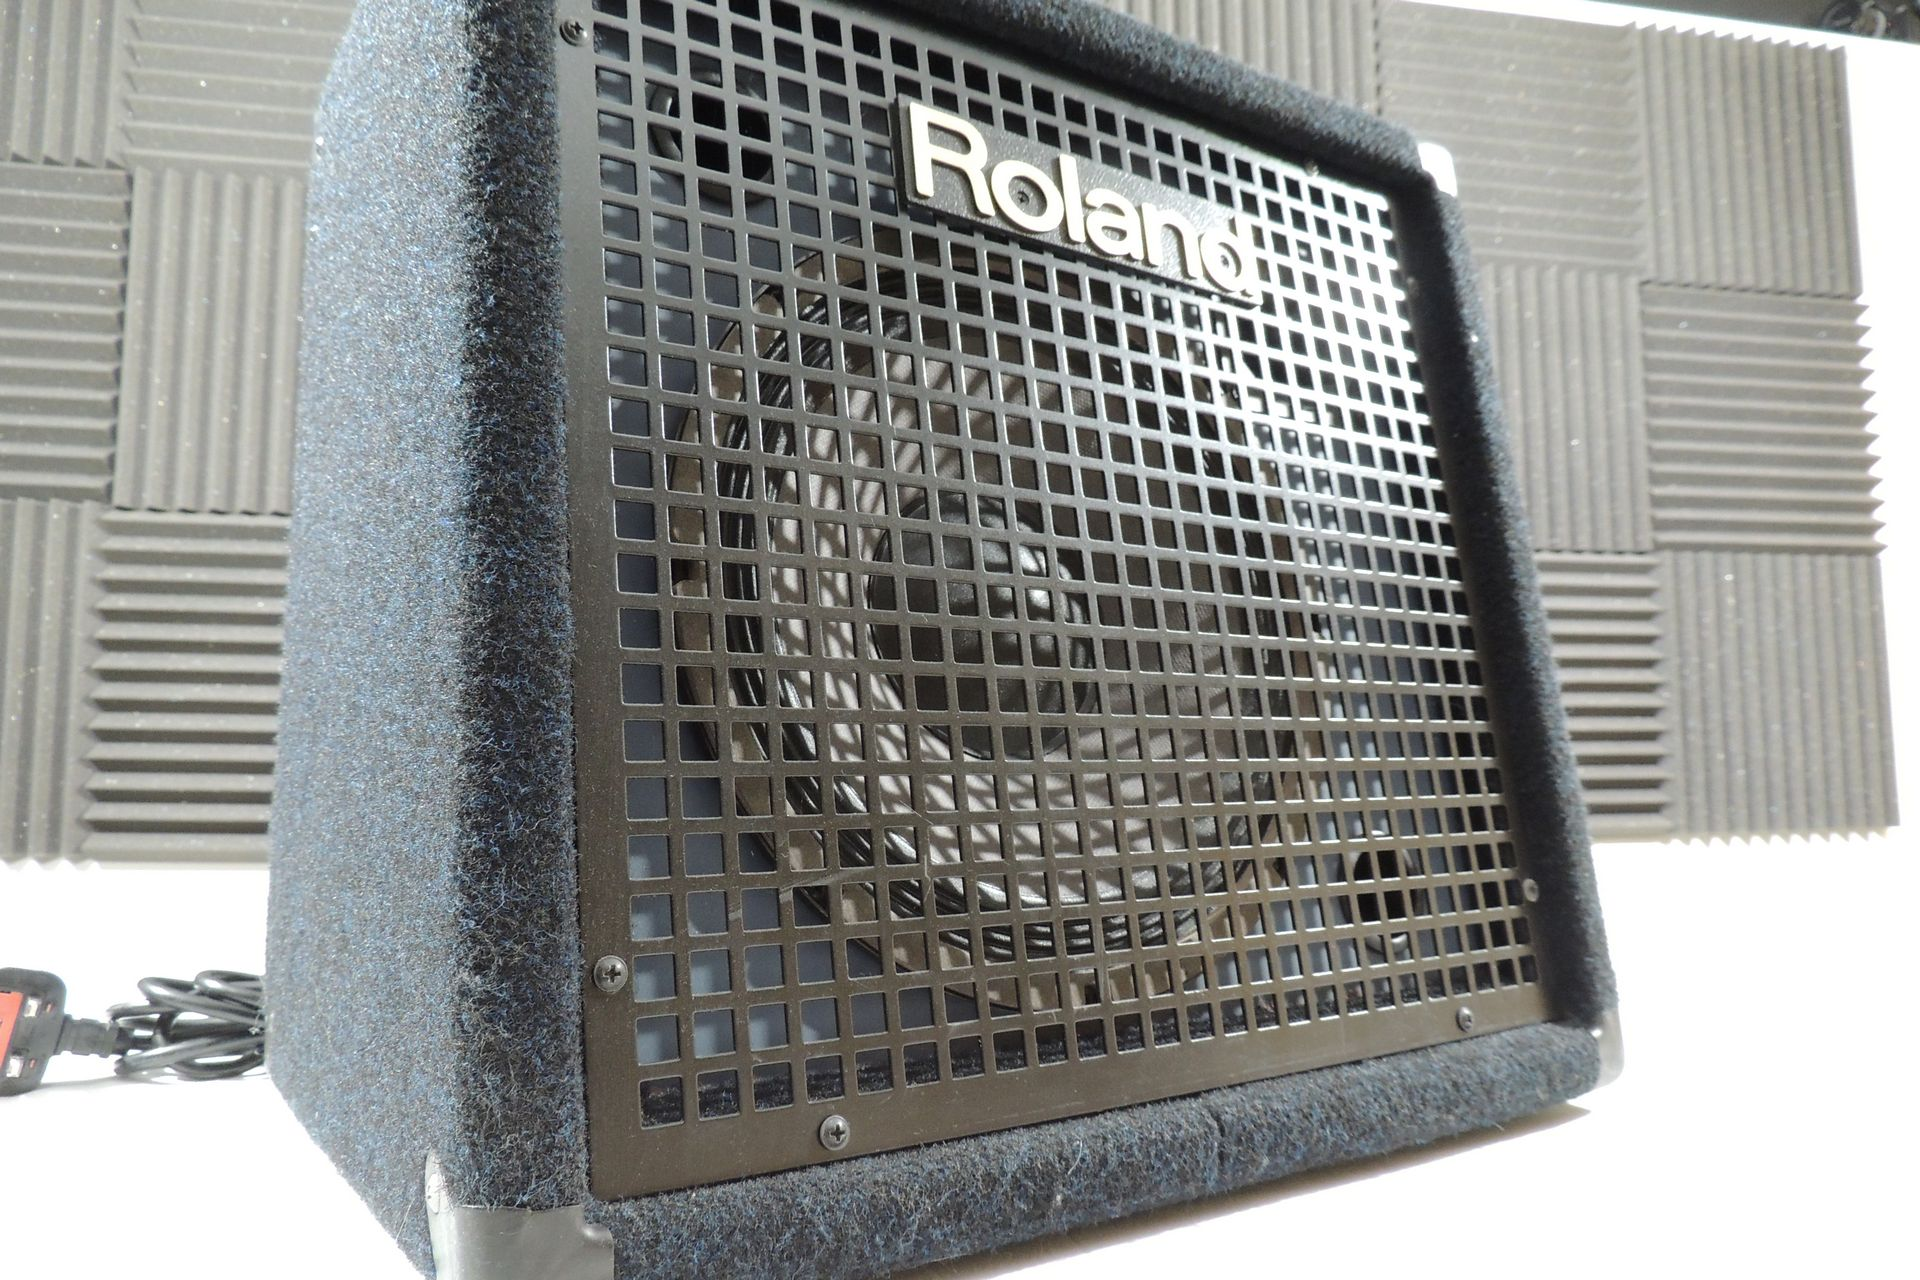 Roland KC-60 keyboard amp for sale at Plasma Music